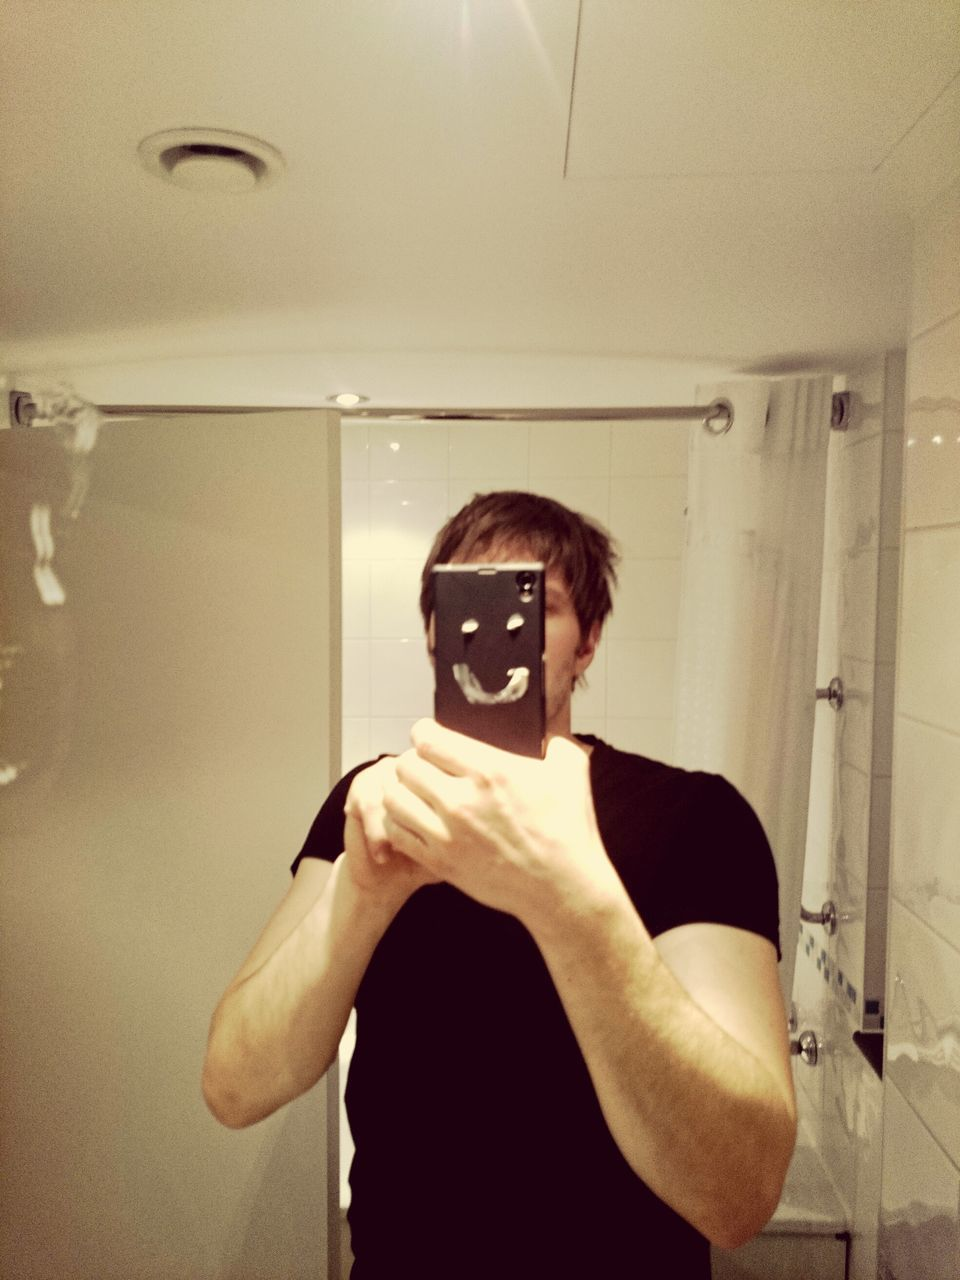 Man Holding Smart Phone With Smiley Face While Standing In Bathroom